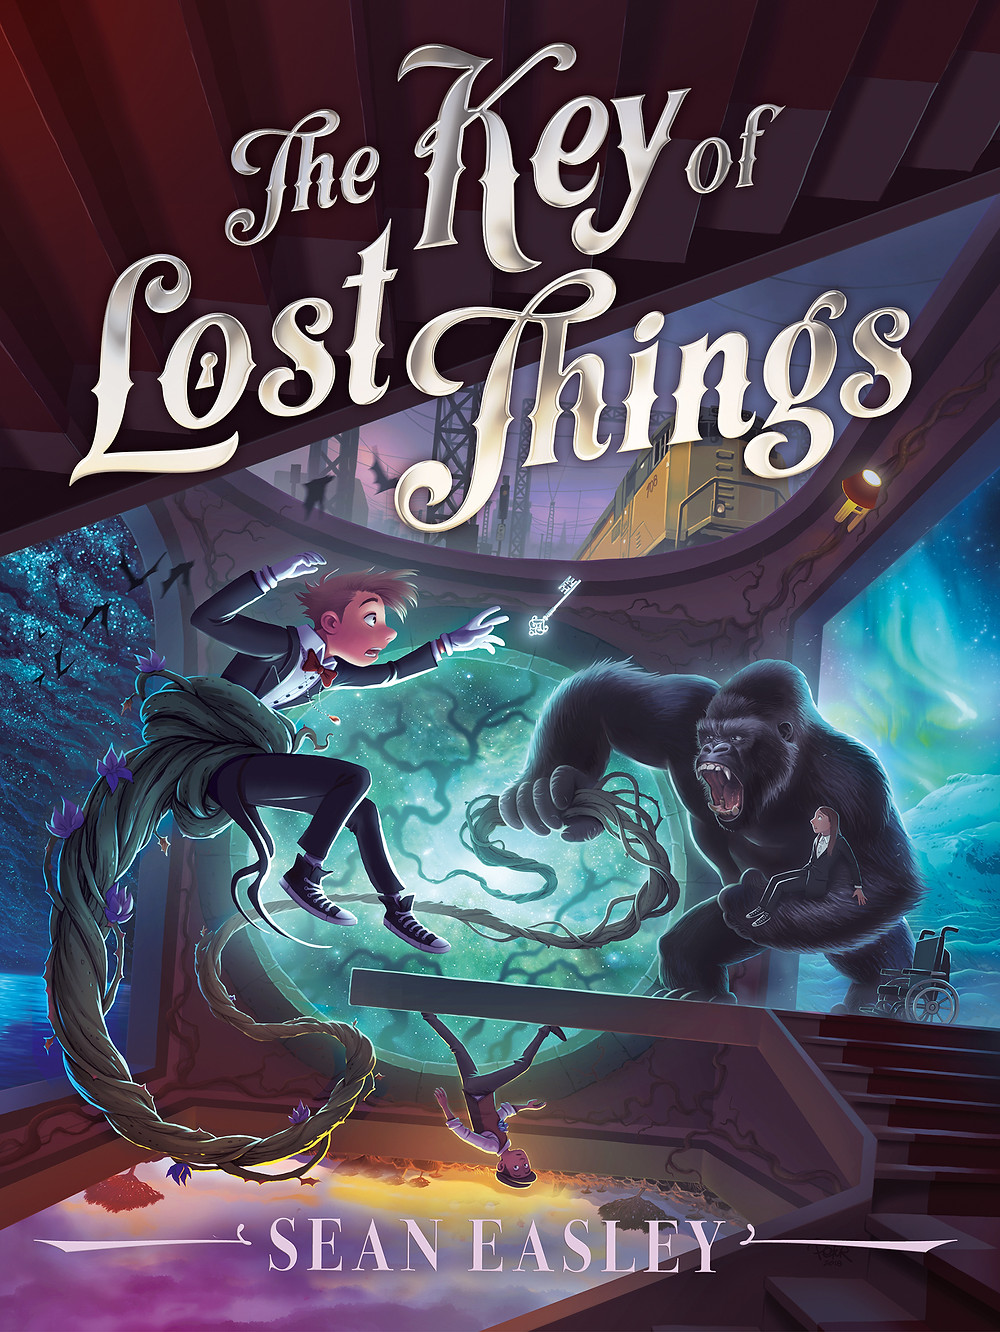 Key of Lost Things cover, with a boy reaching for a key and a gorilla who's picked a girl up out of a wheelchair and looks ferocious